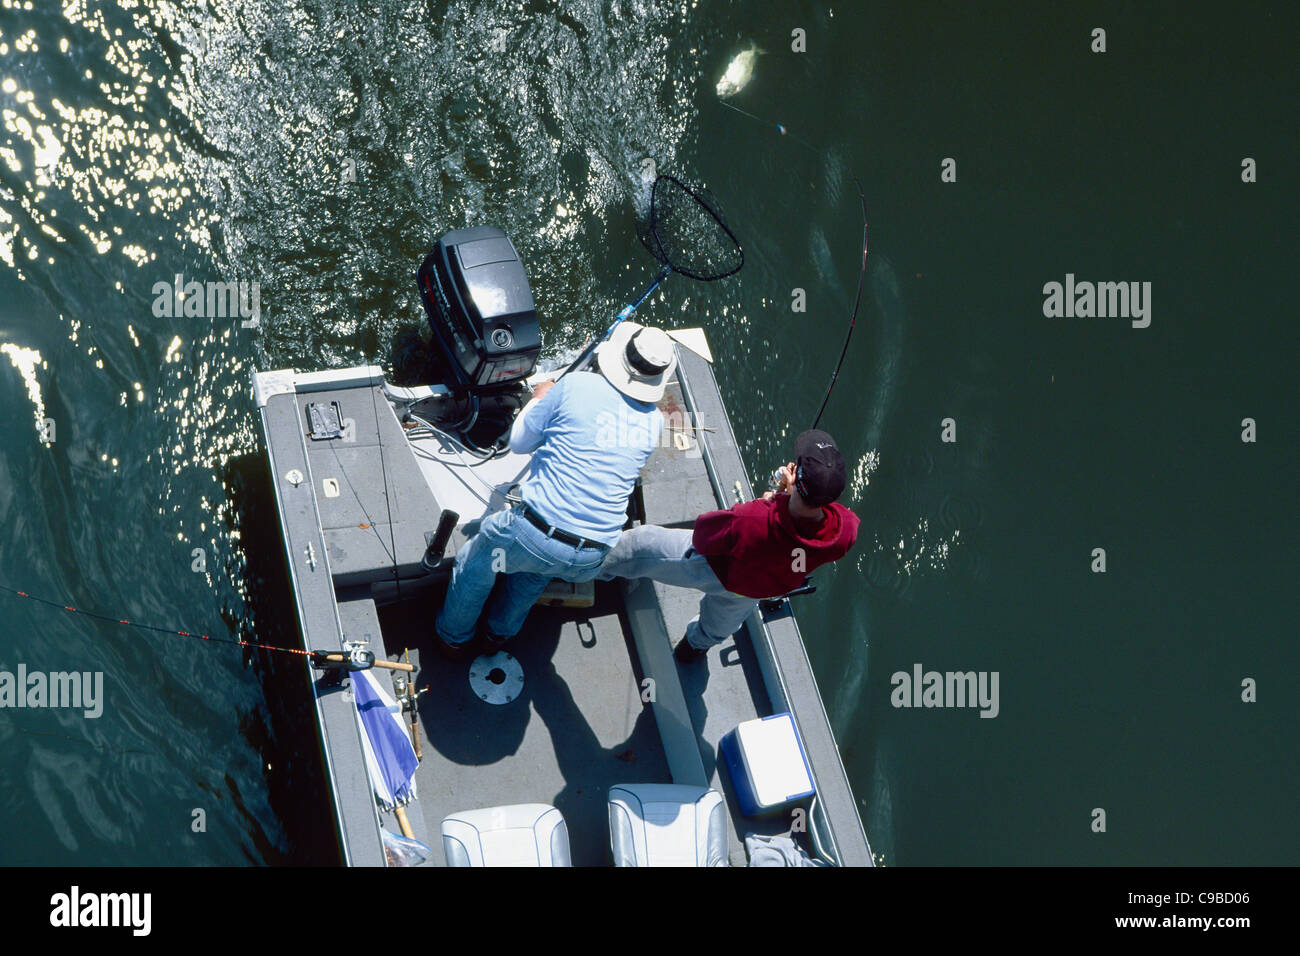 High Angle View of Fishermen Catching a Shad from the Delaware River, Lambertville, New Jersey - Stock Image